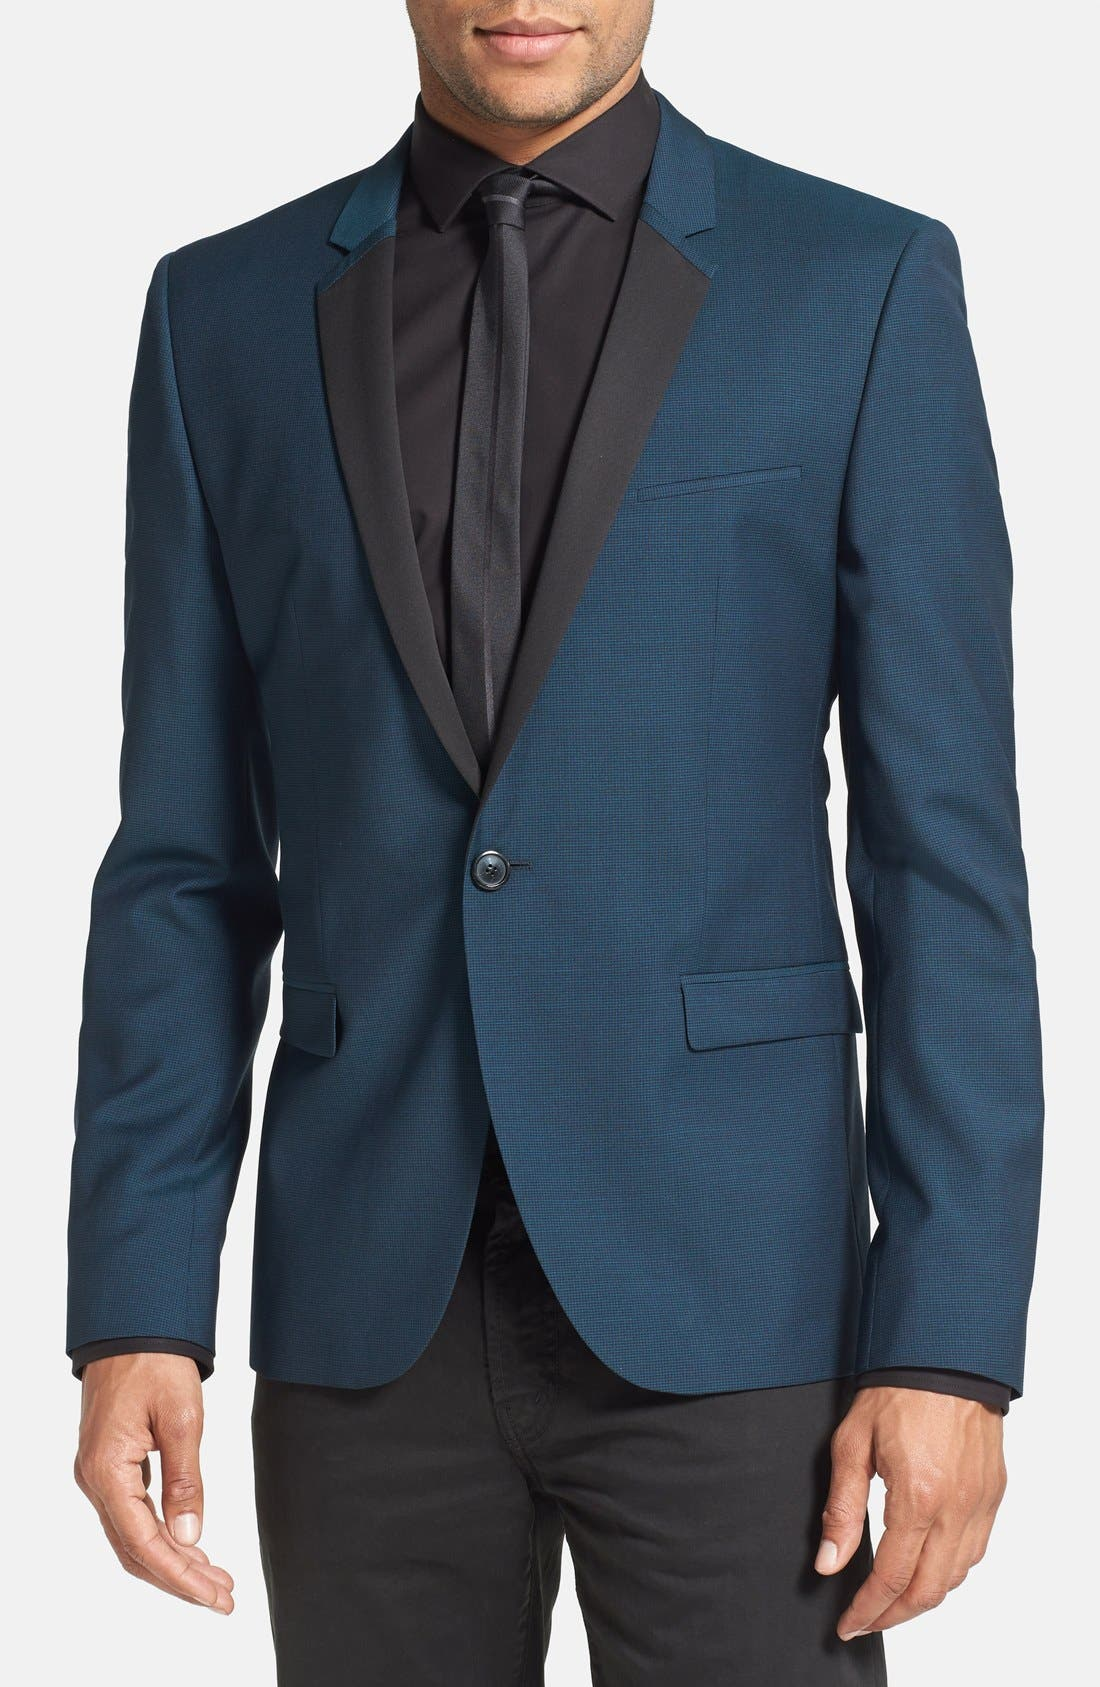 Alternate Image 1 Selected - HUGO 'Extra' Trim Fit Wool Sport Coat (Online Only)